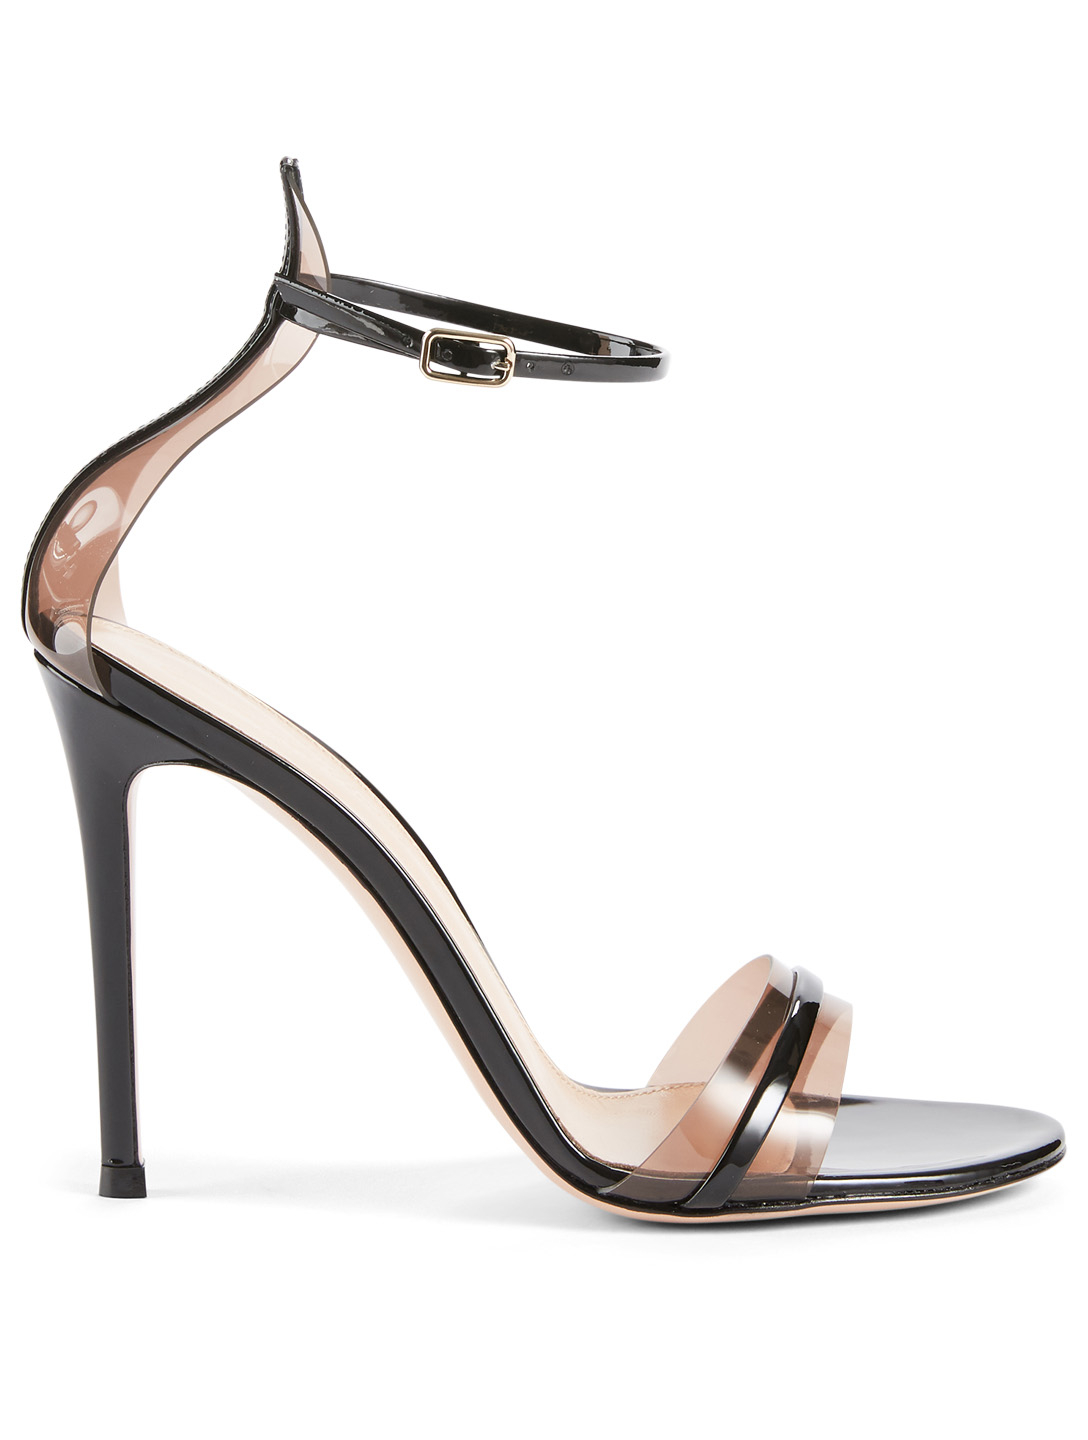 502494858 GIANVITO ROSSI G String Leather And PVC Heeled Sandals